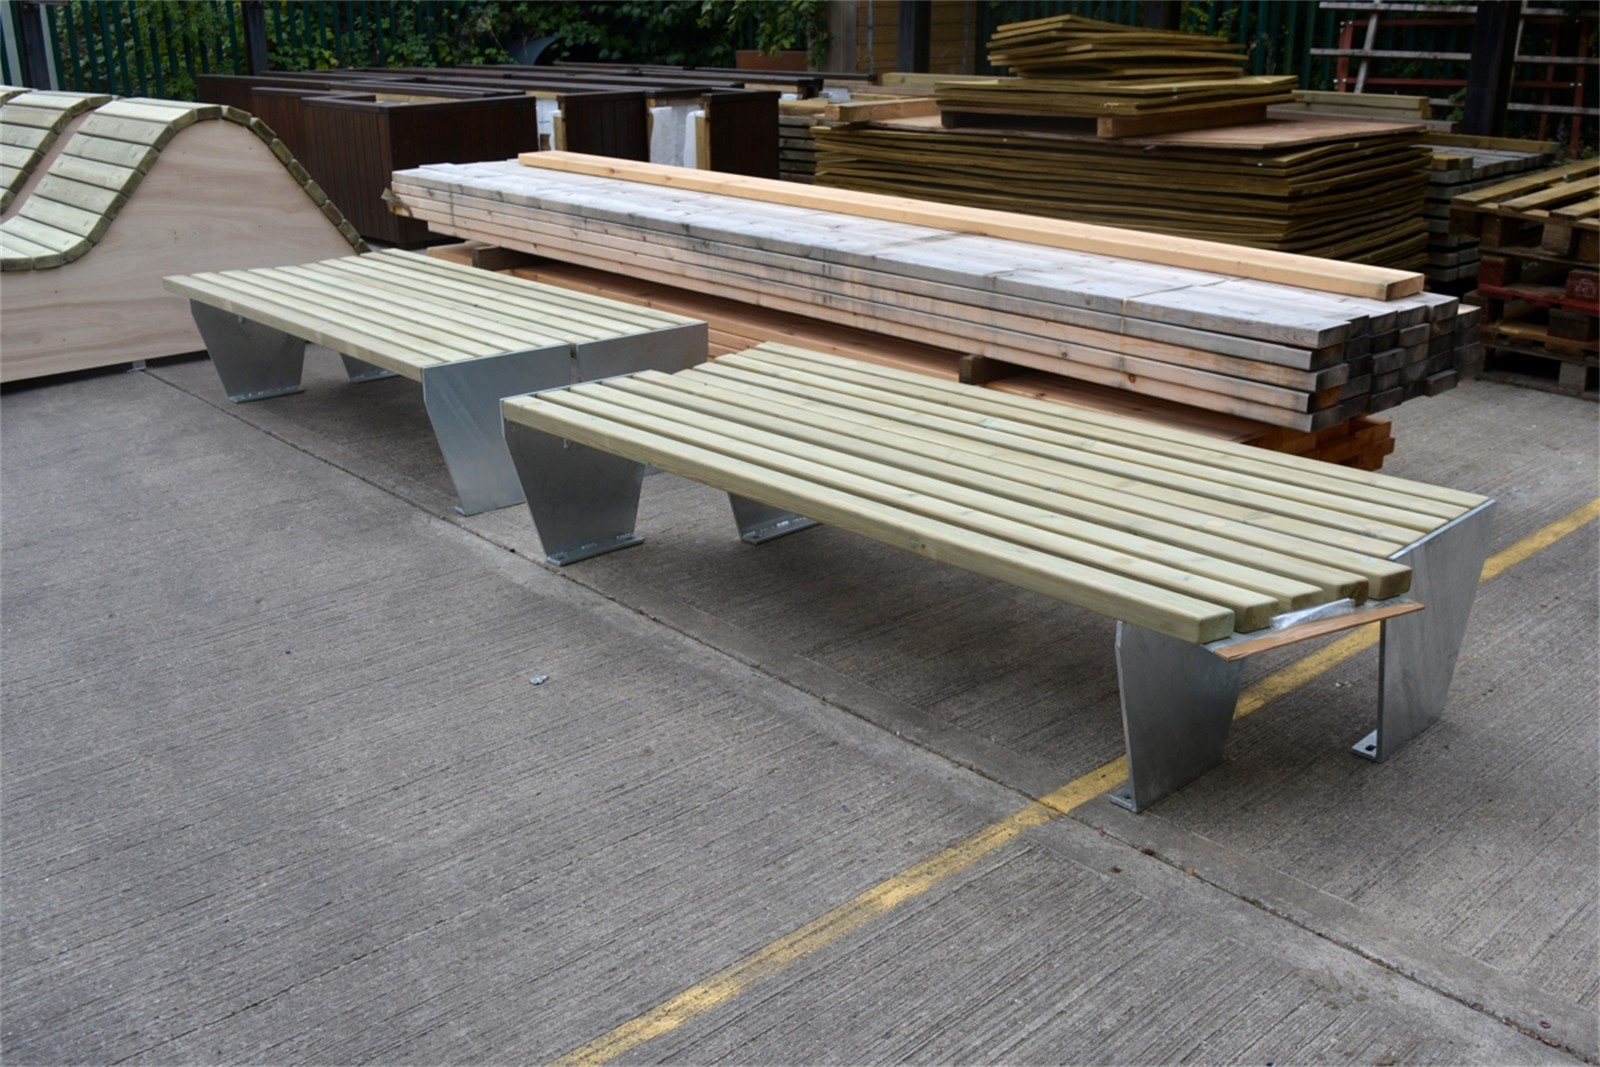 c121t04 - Angled timber slatted benches in manufacture